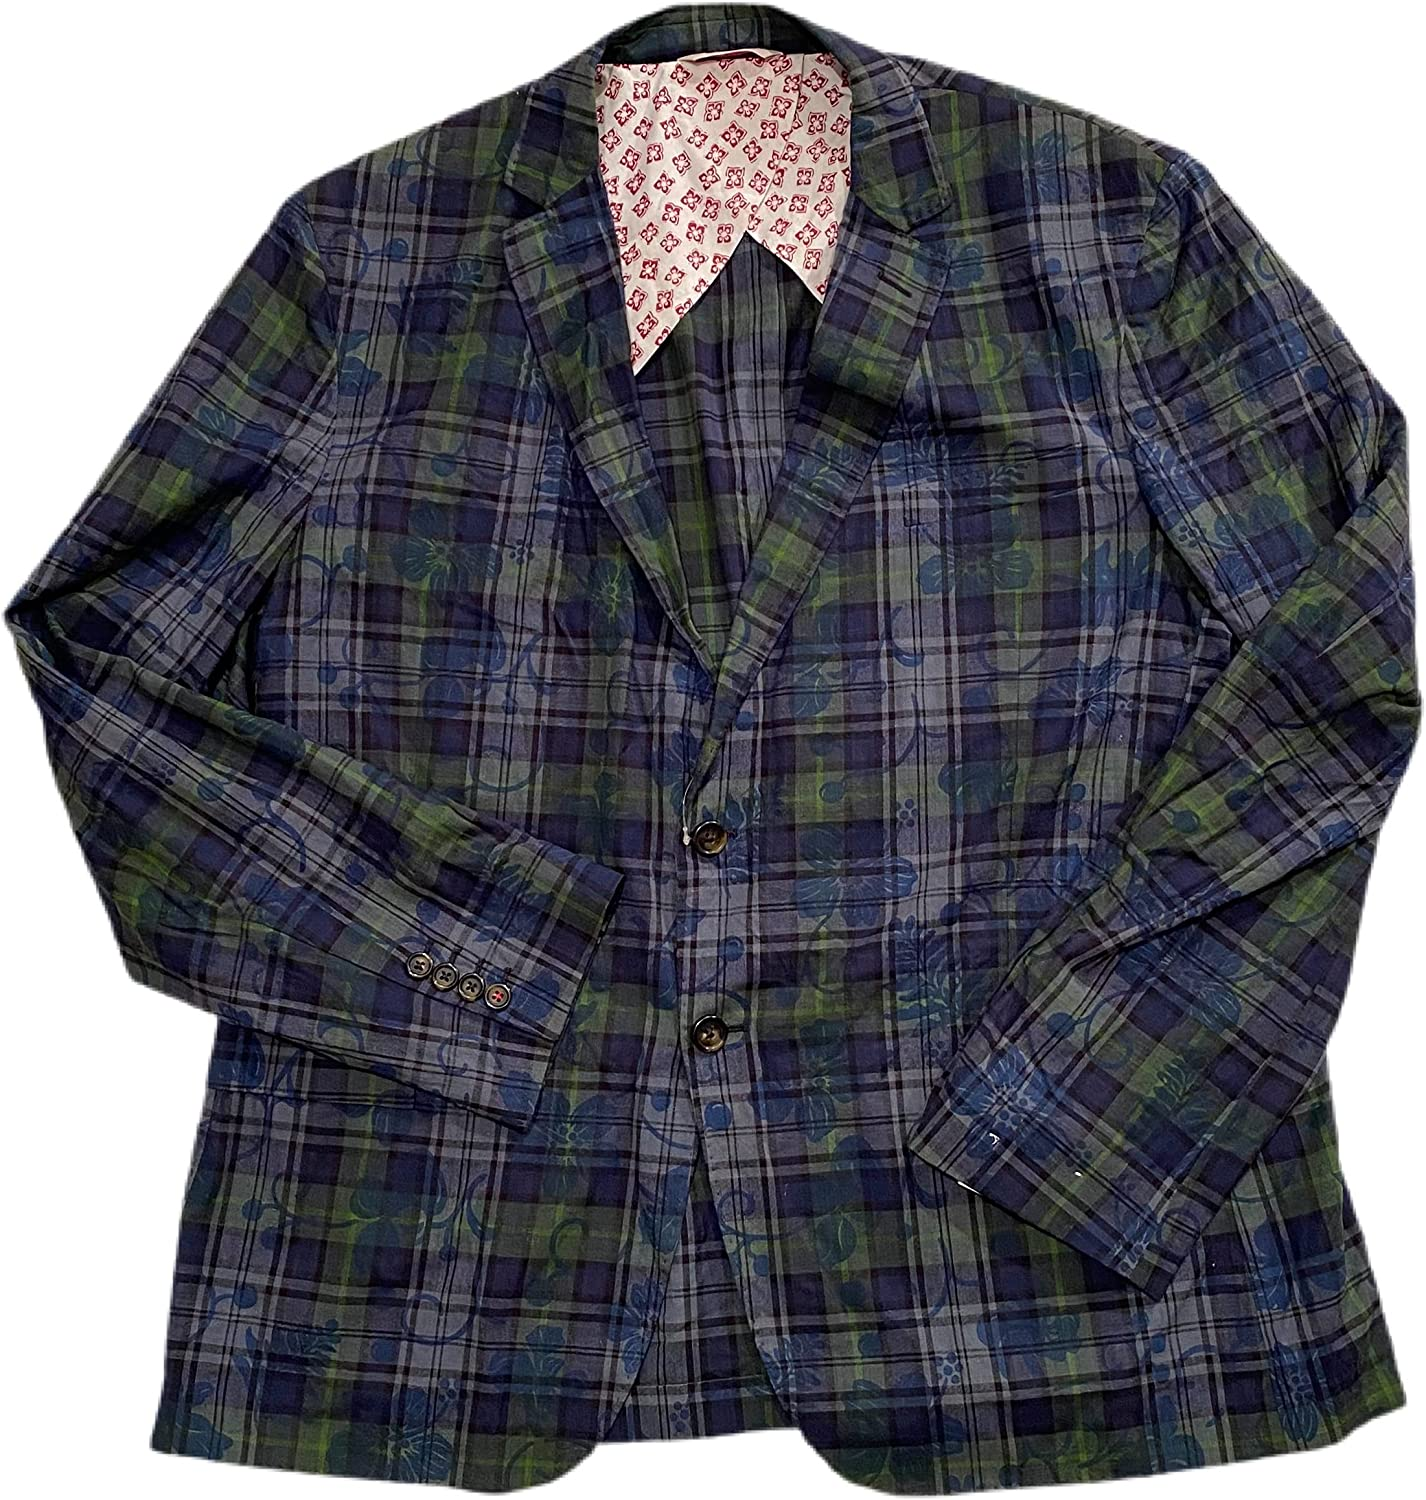 BROOK BROTHERS RED Fleece Men's Navy-Green Plaid Floral Printed Cotton Slim Partially Lined Blazer 2 Buttons,2 Back Vents Size 48R